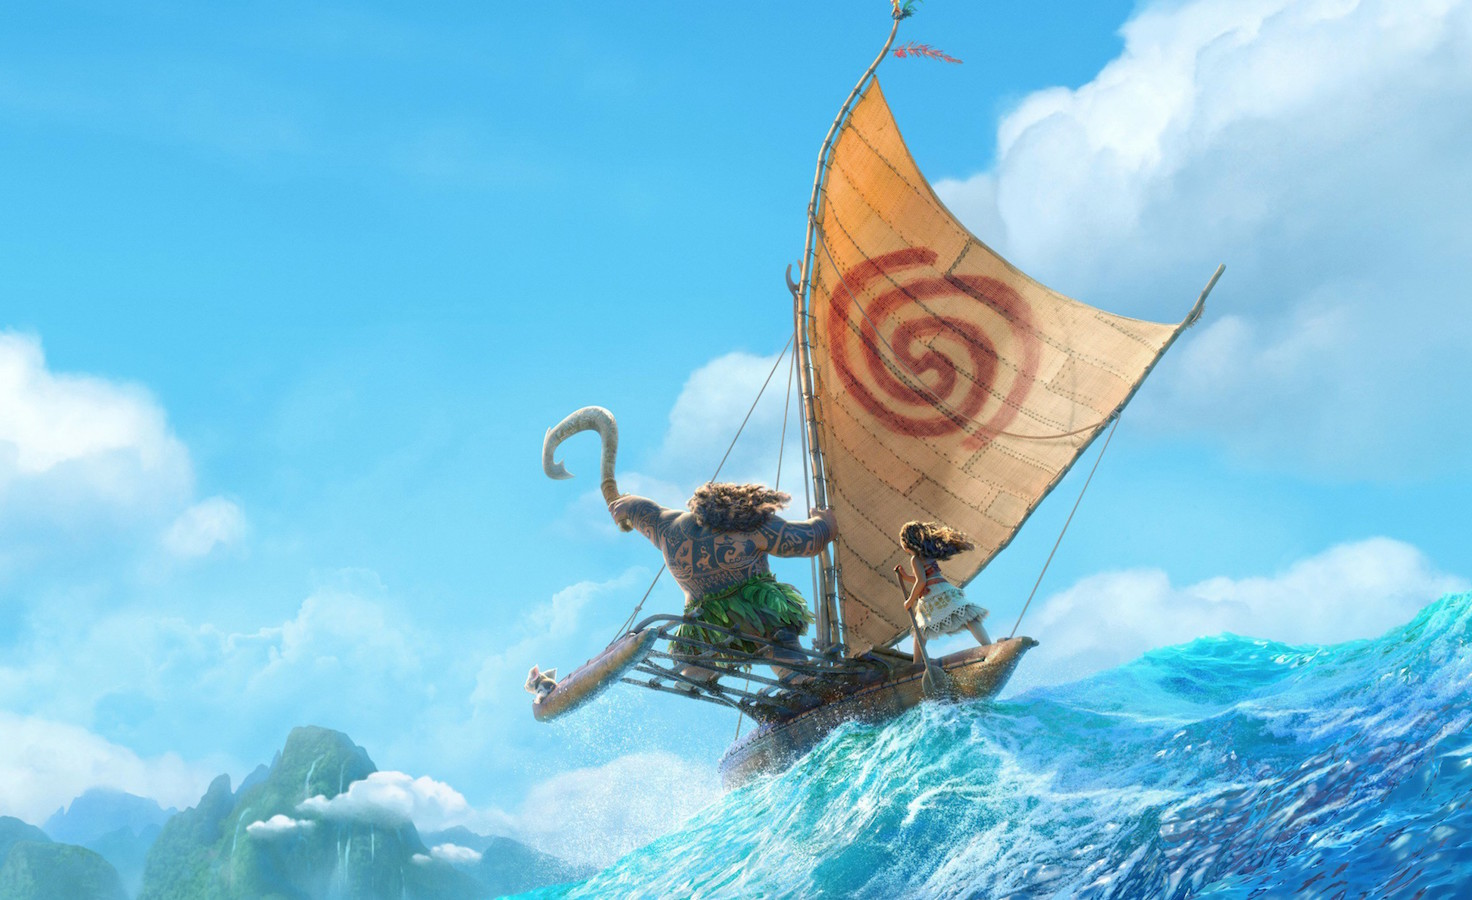 'Moana' and Other Movie Tales of the South Pacific